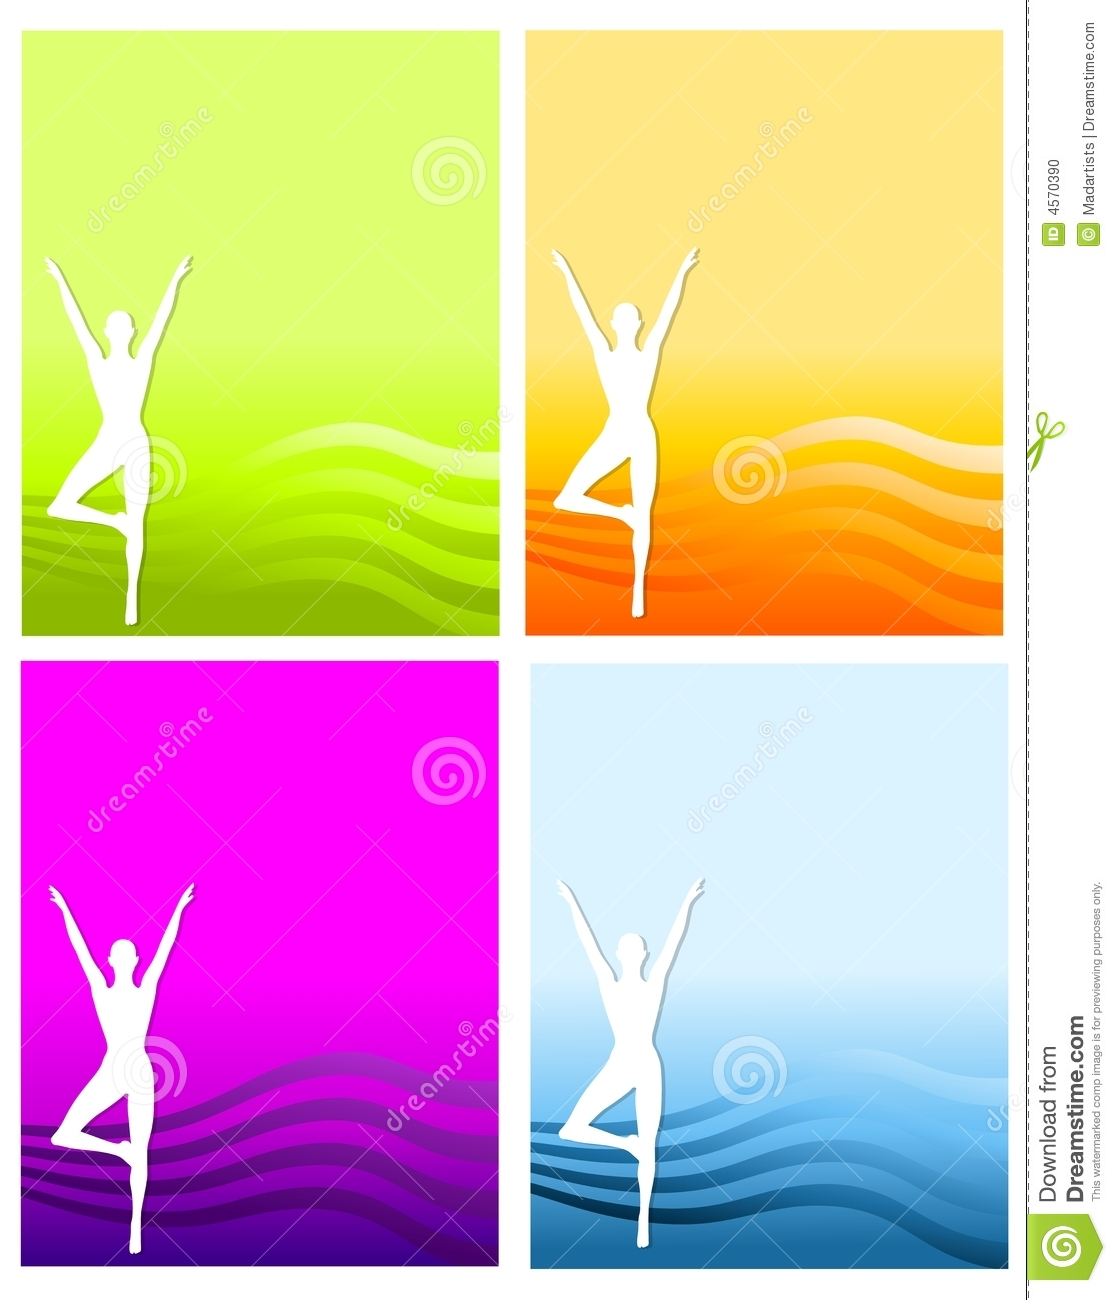 fitness silhouette backgrounds stock photo